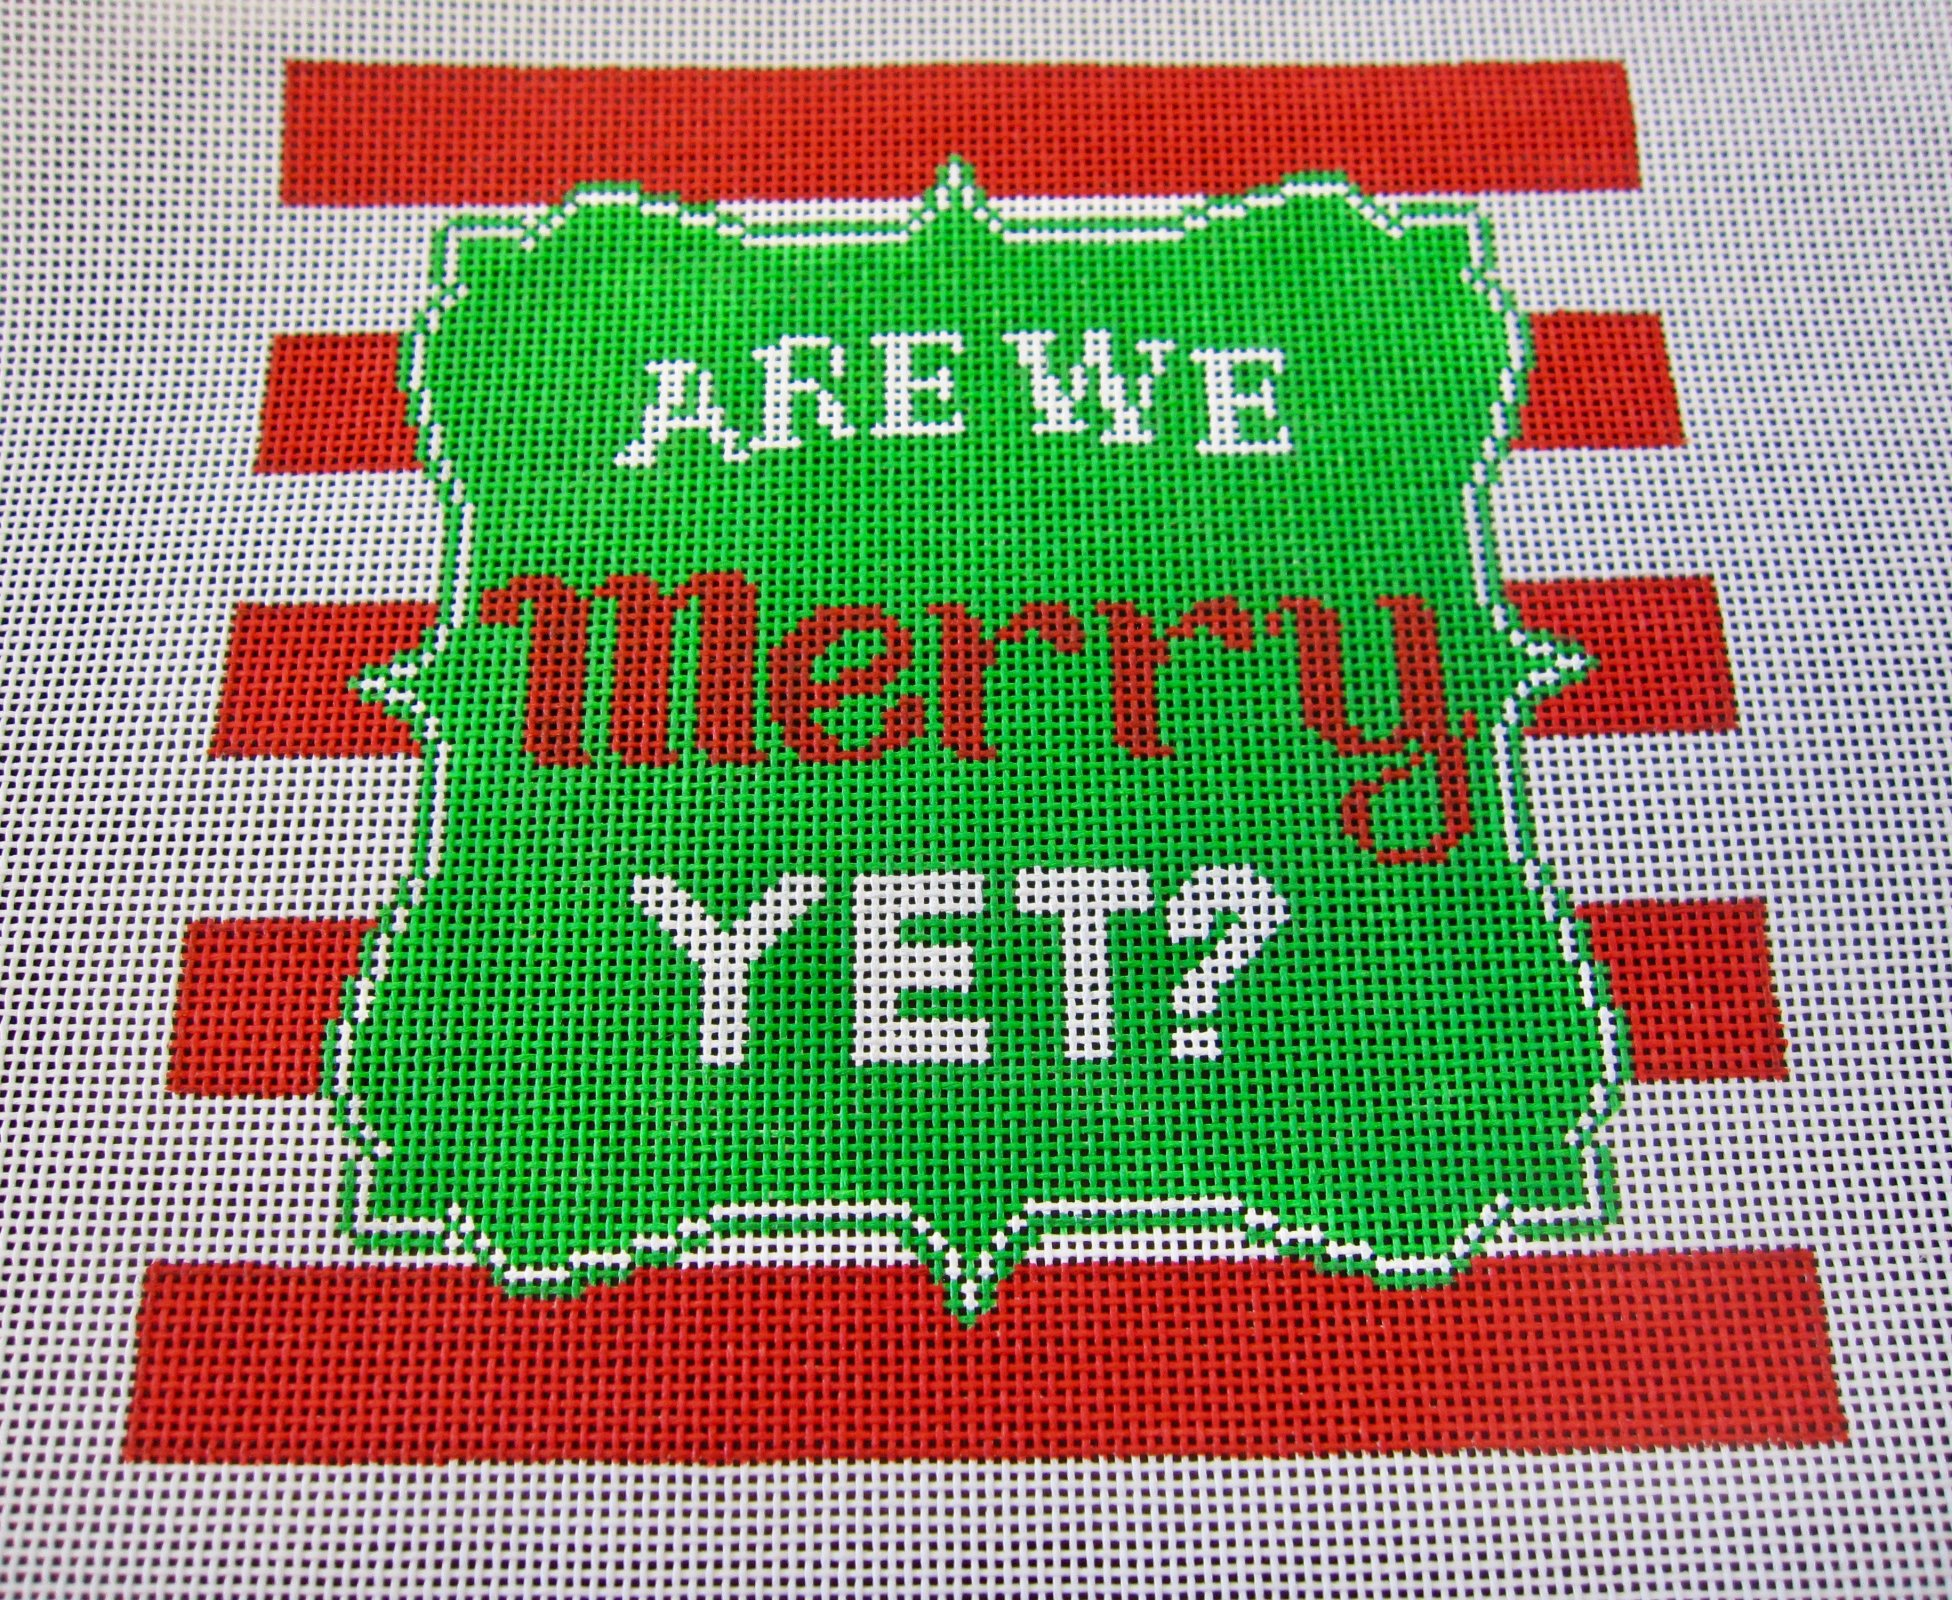 Are We Merry Yet?